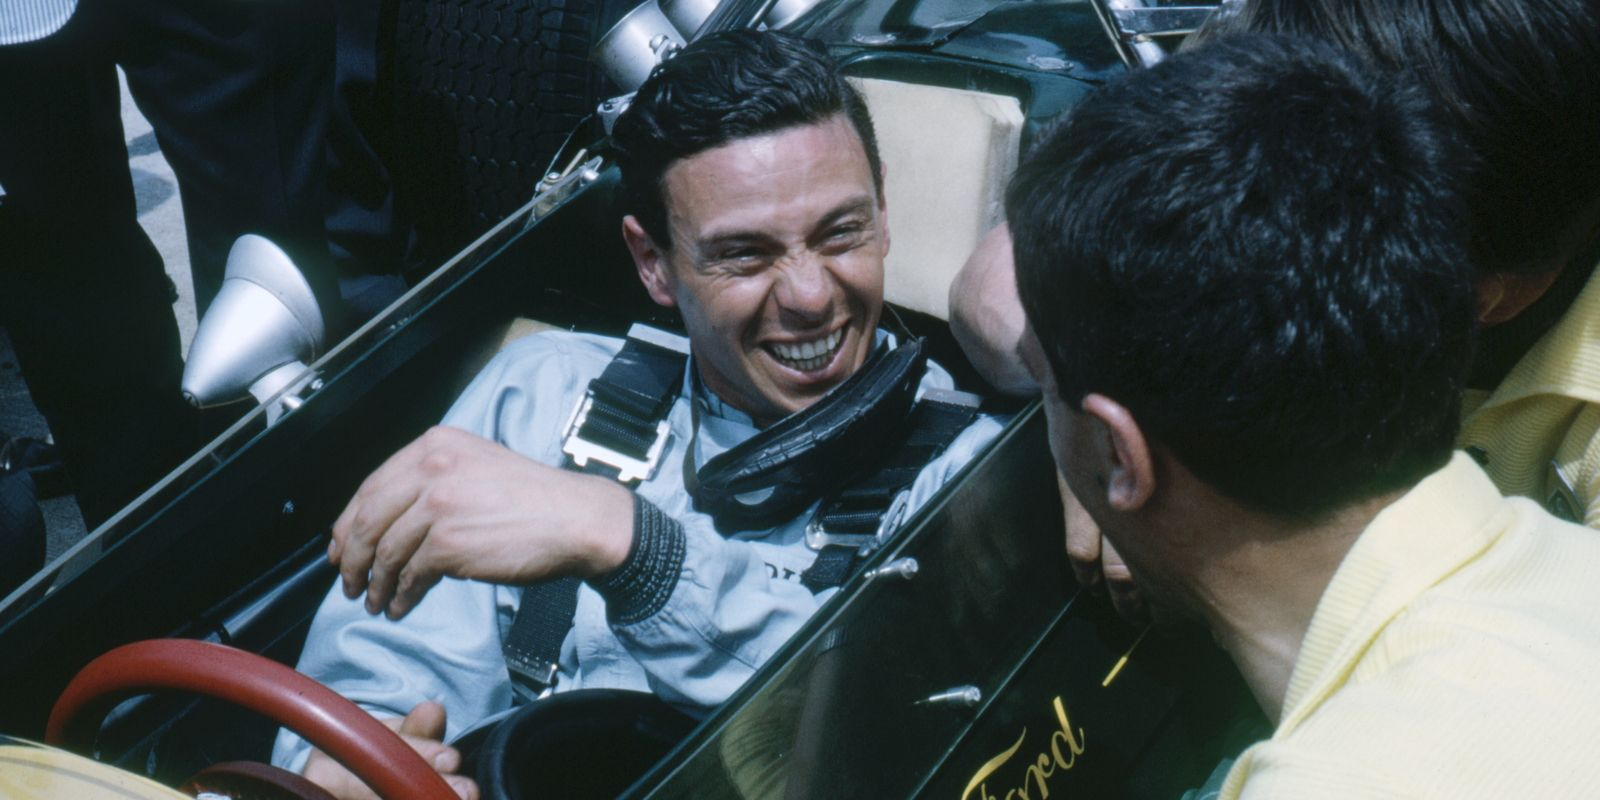 F1 Drivers At IMS: Jim Clark — Jim Clark laughing in the cockpit